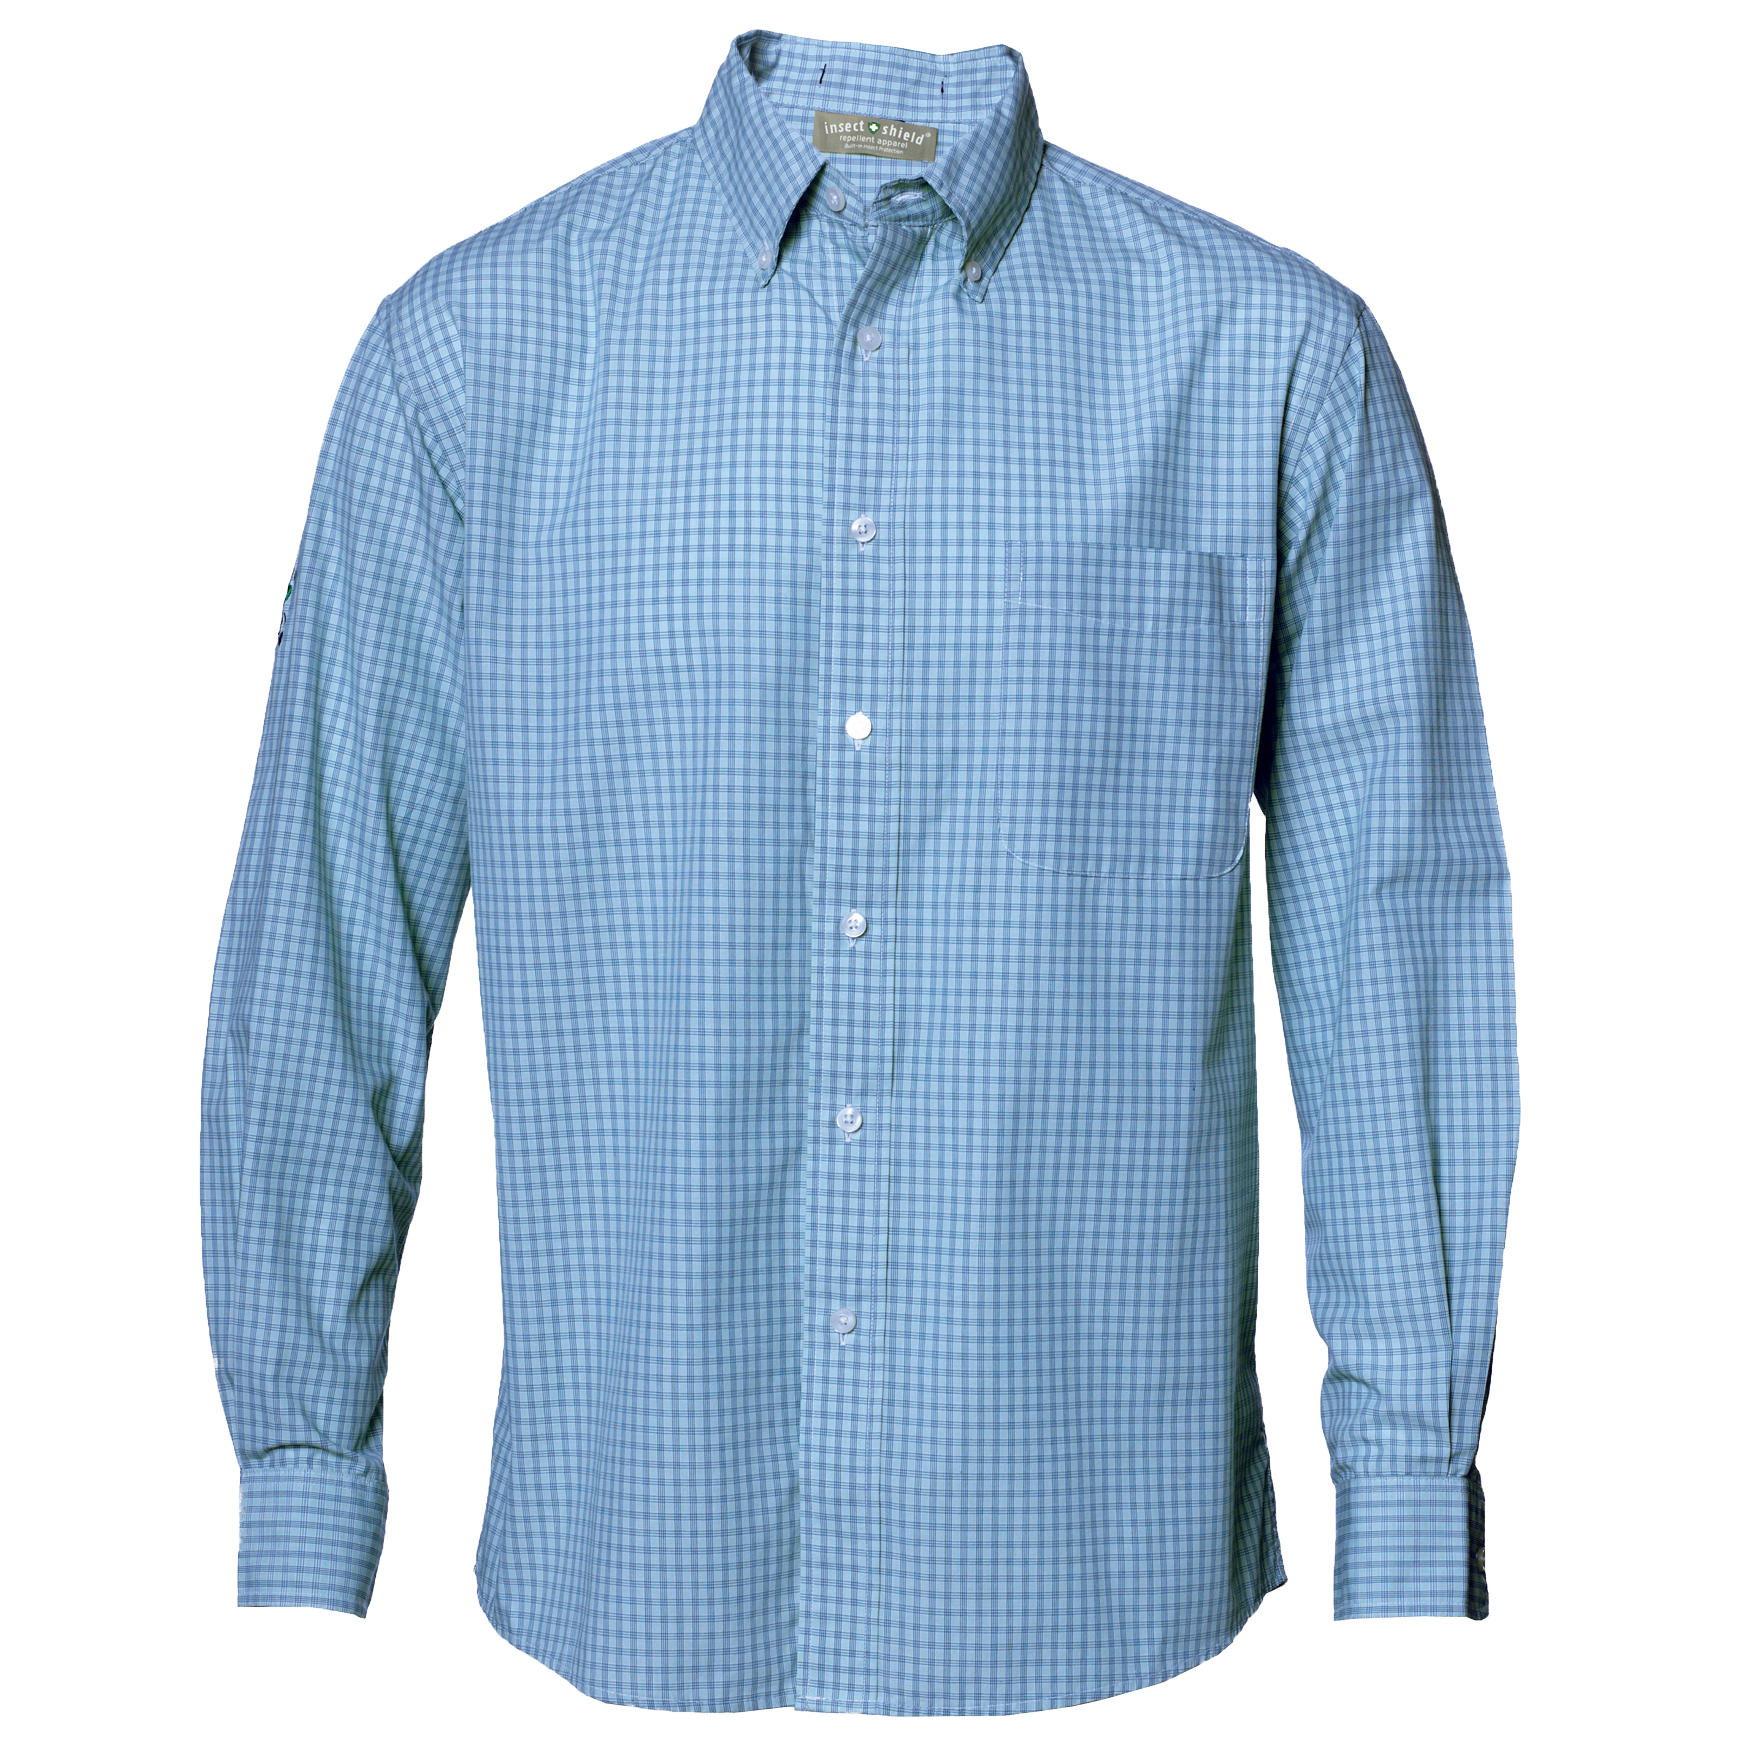 Mini-Plaid Wrinkle Resistant Shirt